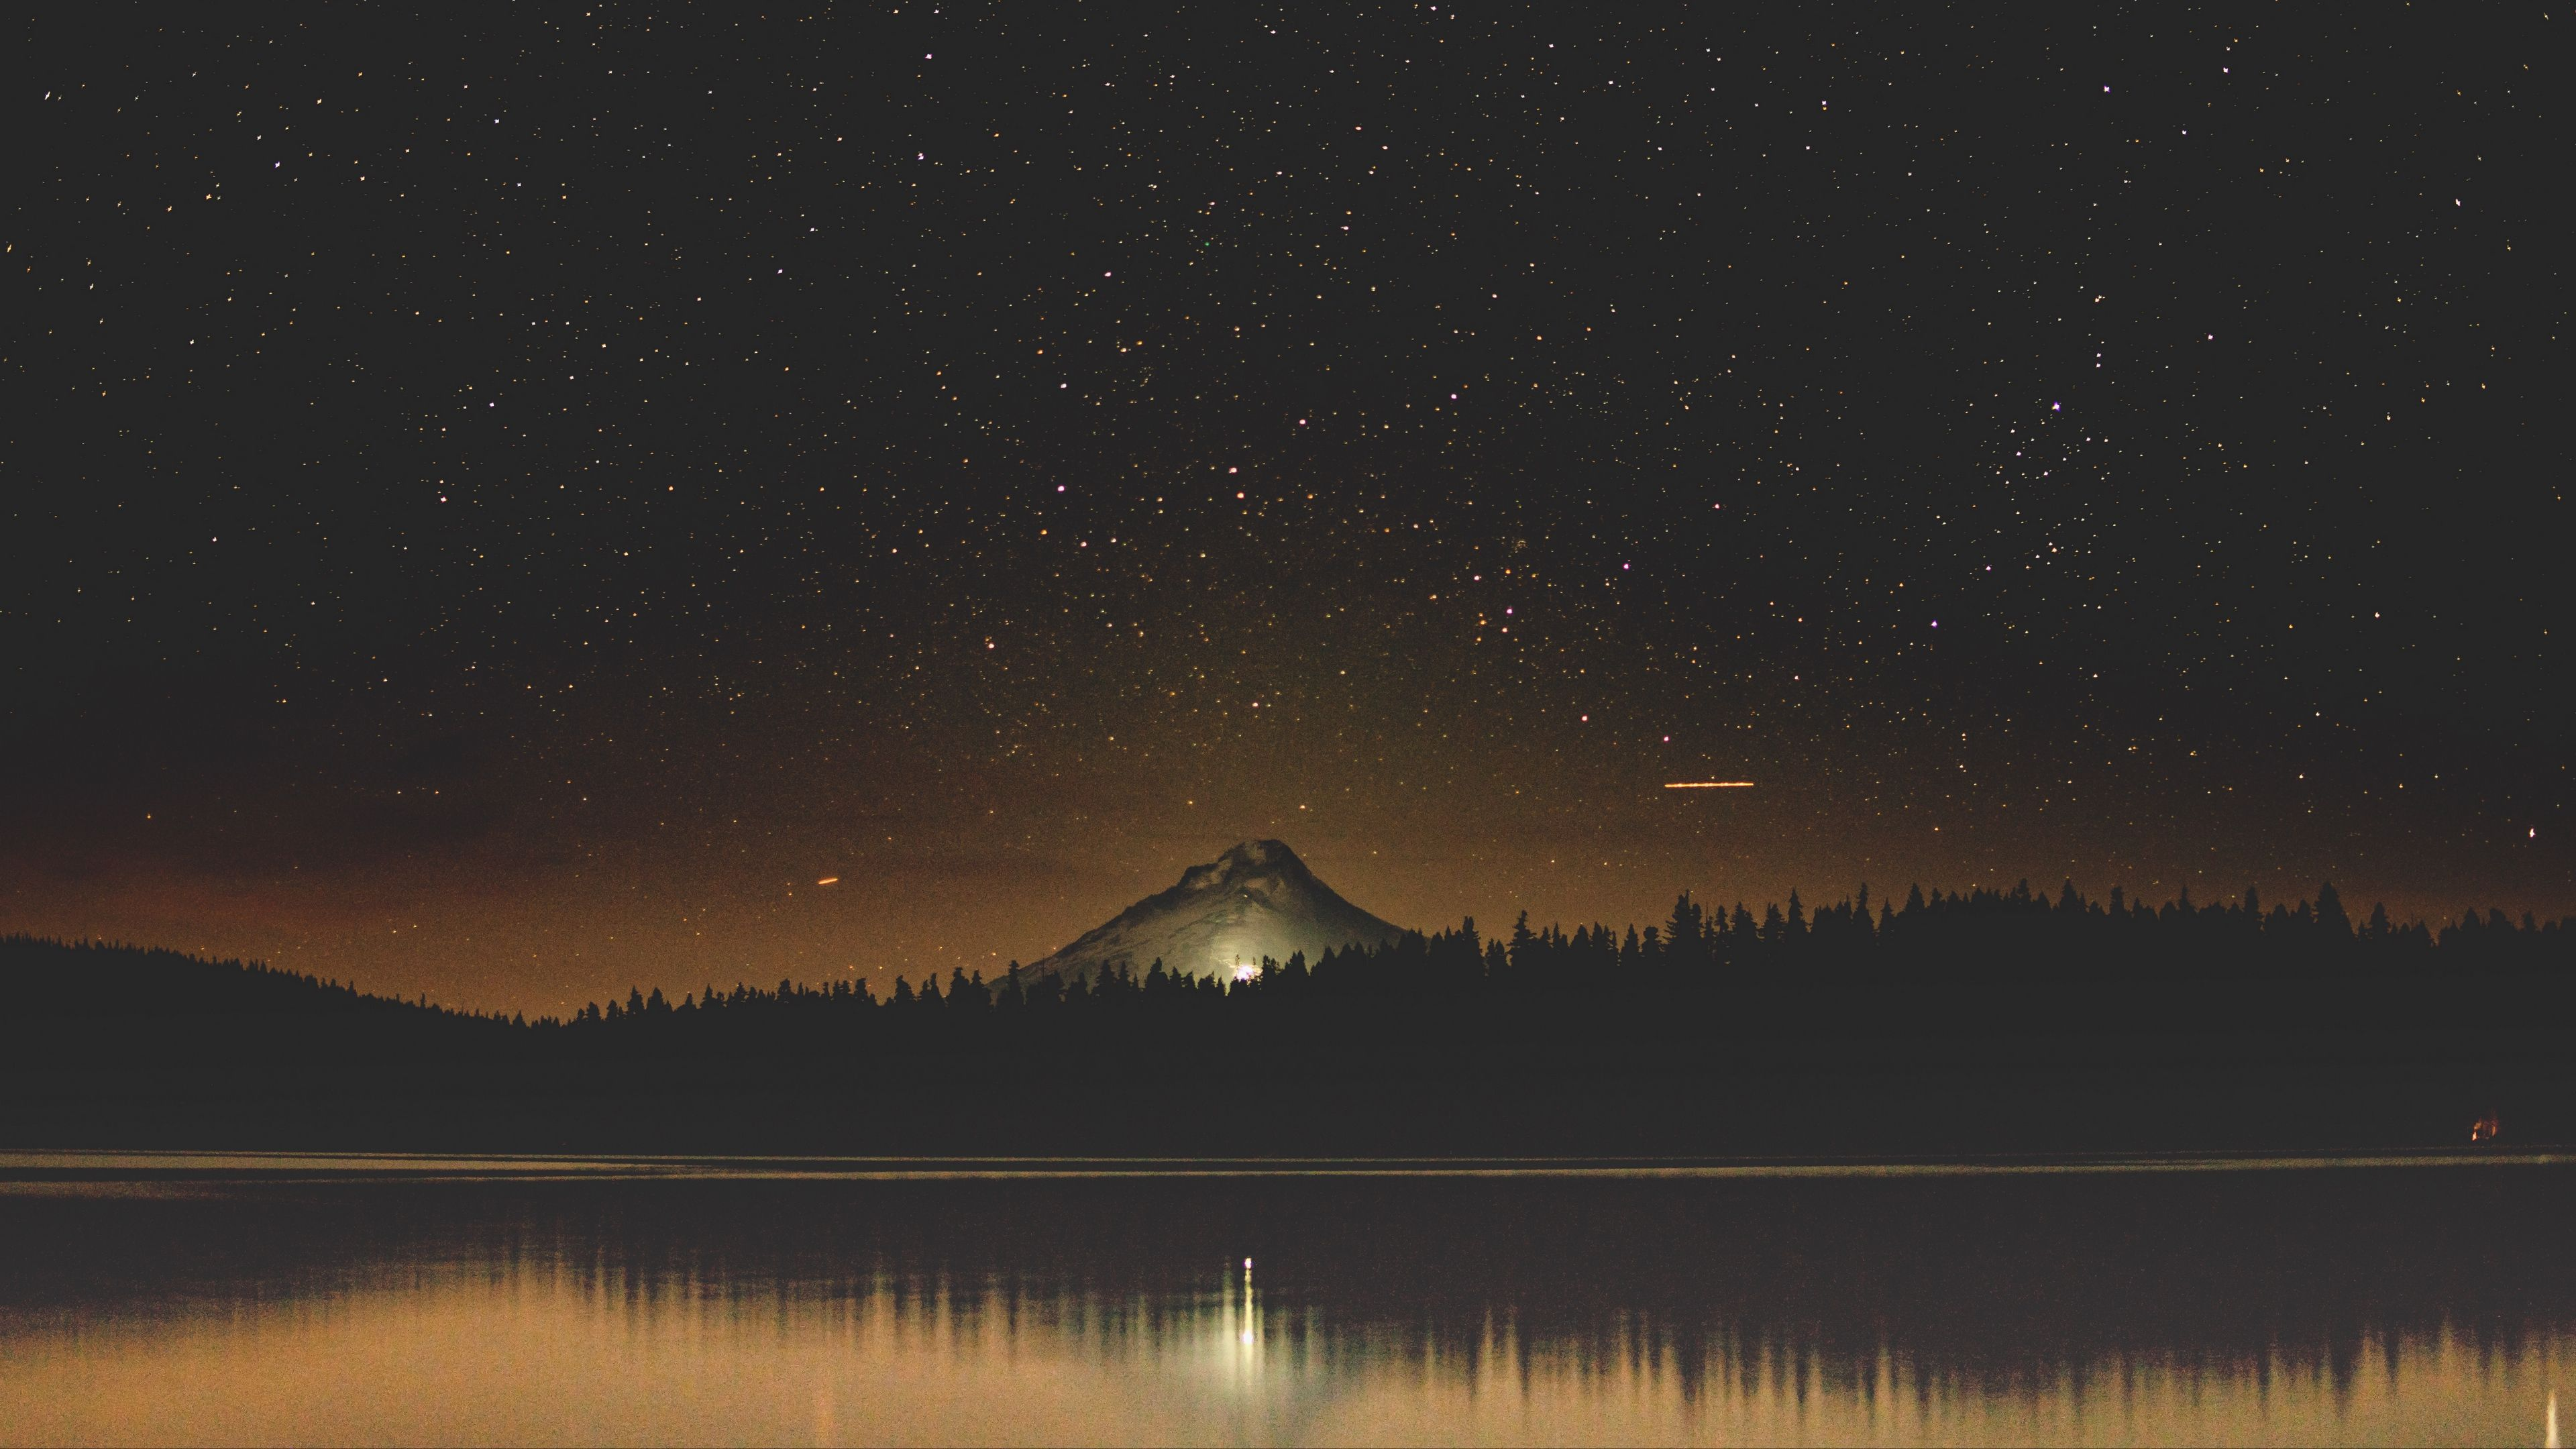 Starry Sky Lake Mountain Trees Night Timothy Lake United States 4k Starry Sky Mountain Lake Night Sky Painting Night Landscape Beautiful Images Nature Wallpaper night starry sky lake trees